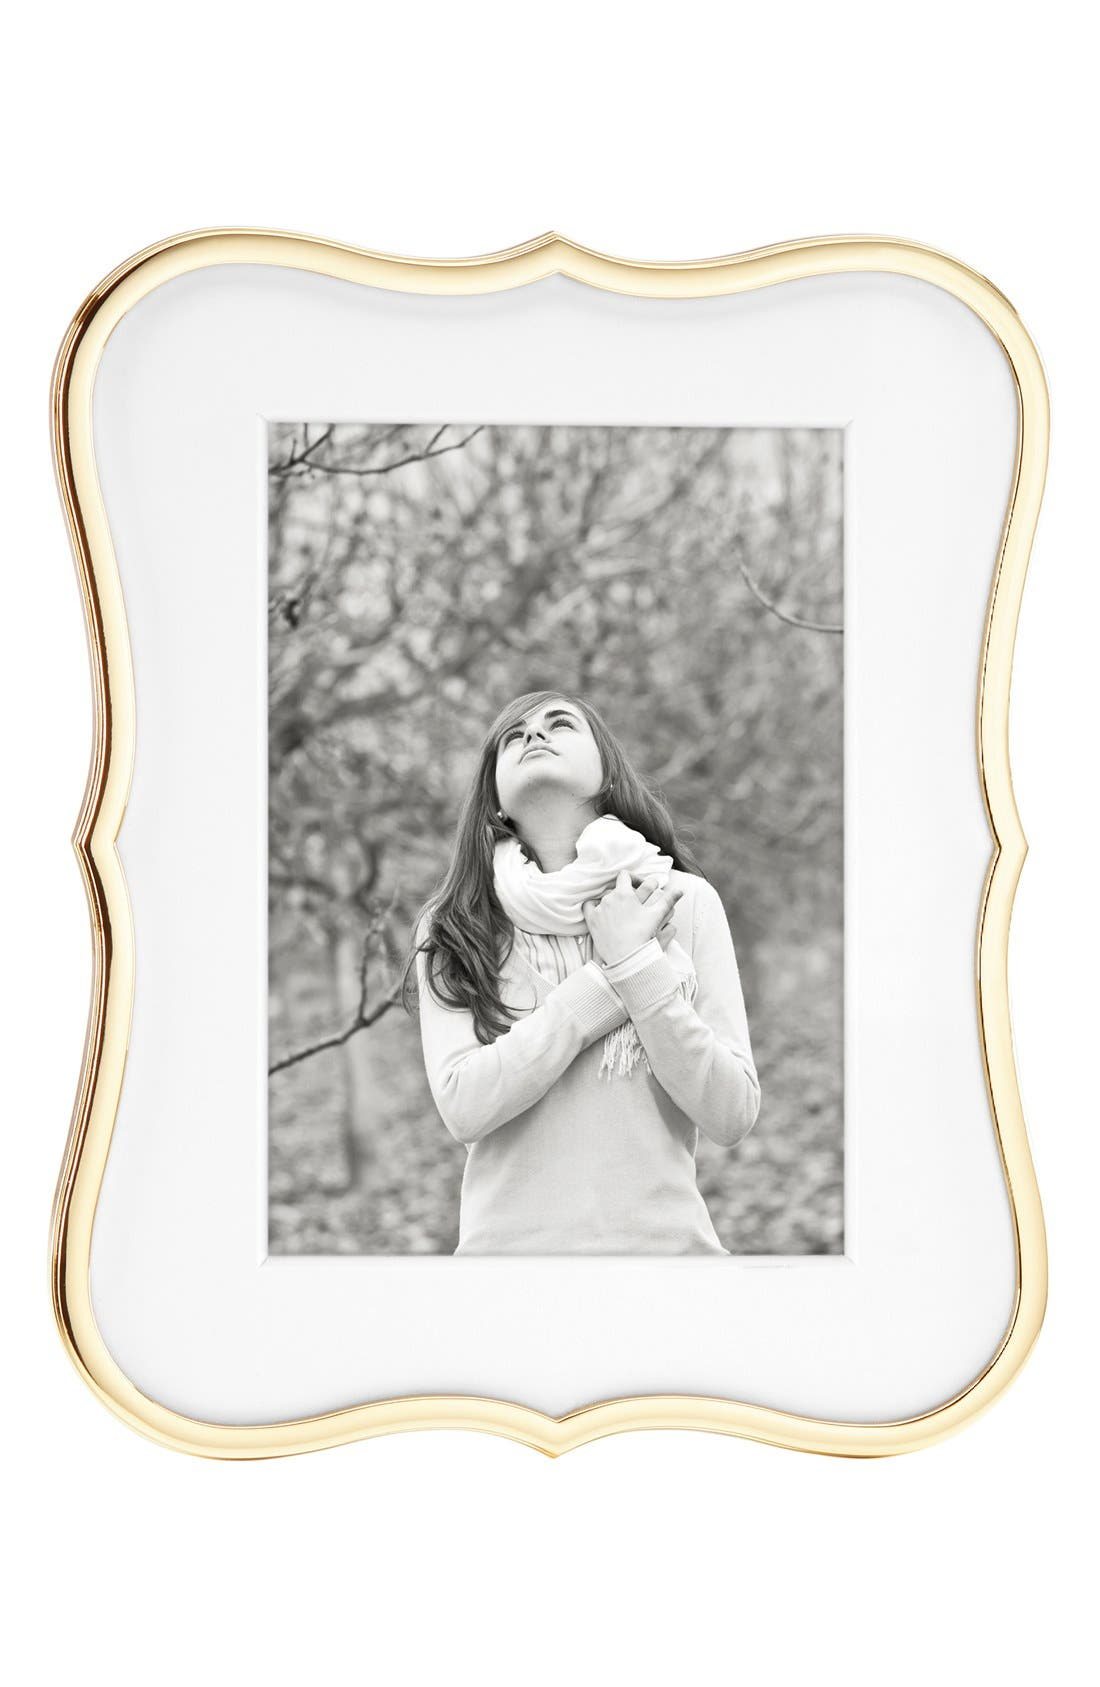 kate spade new york 'crown point' picture frame